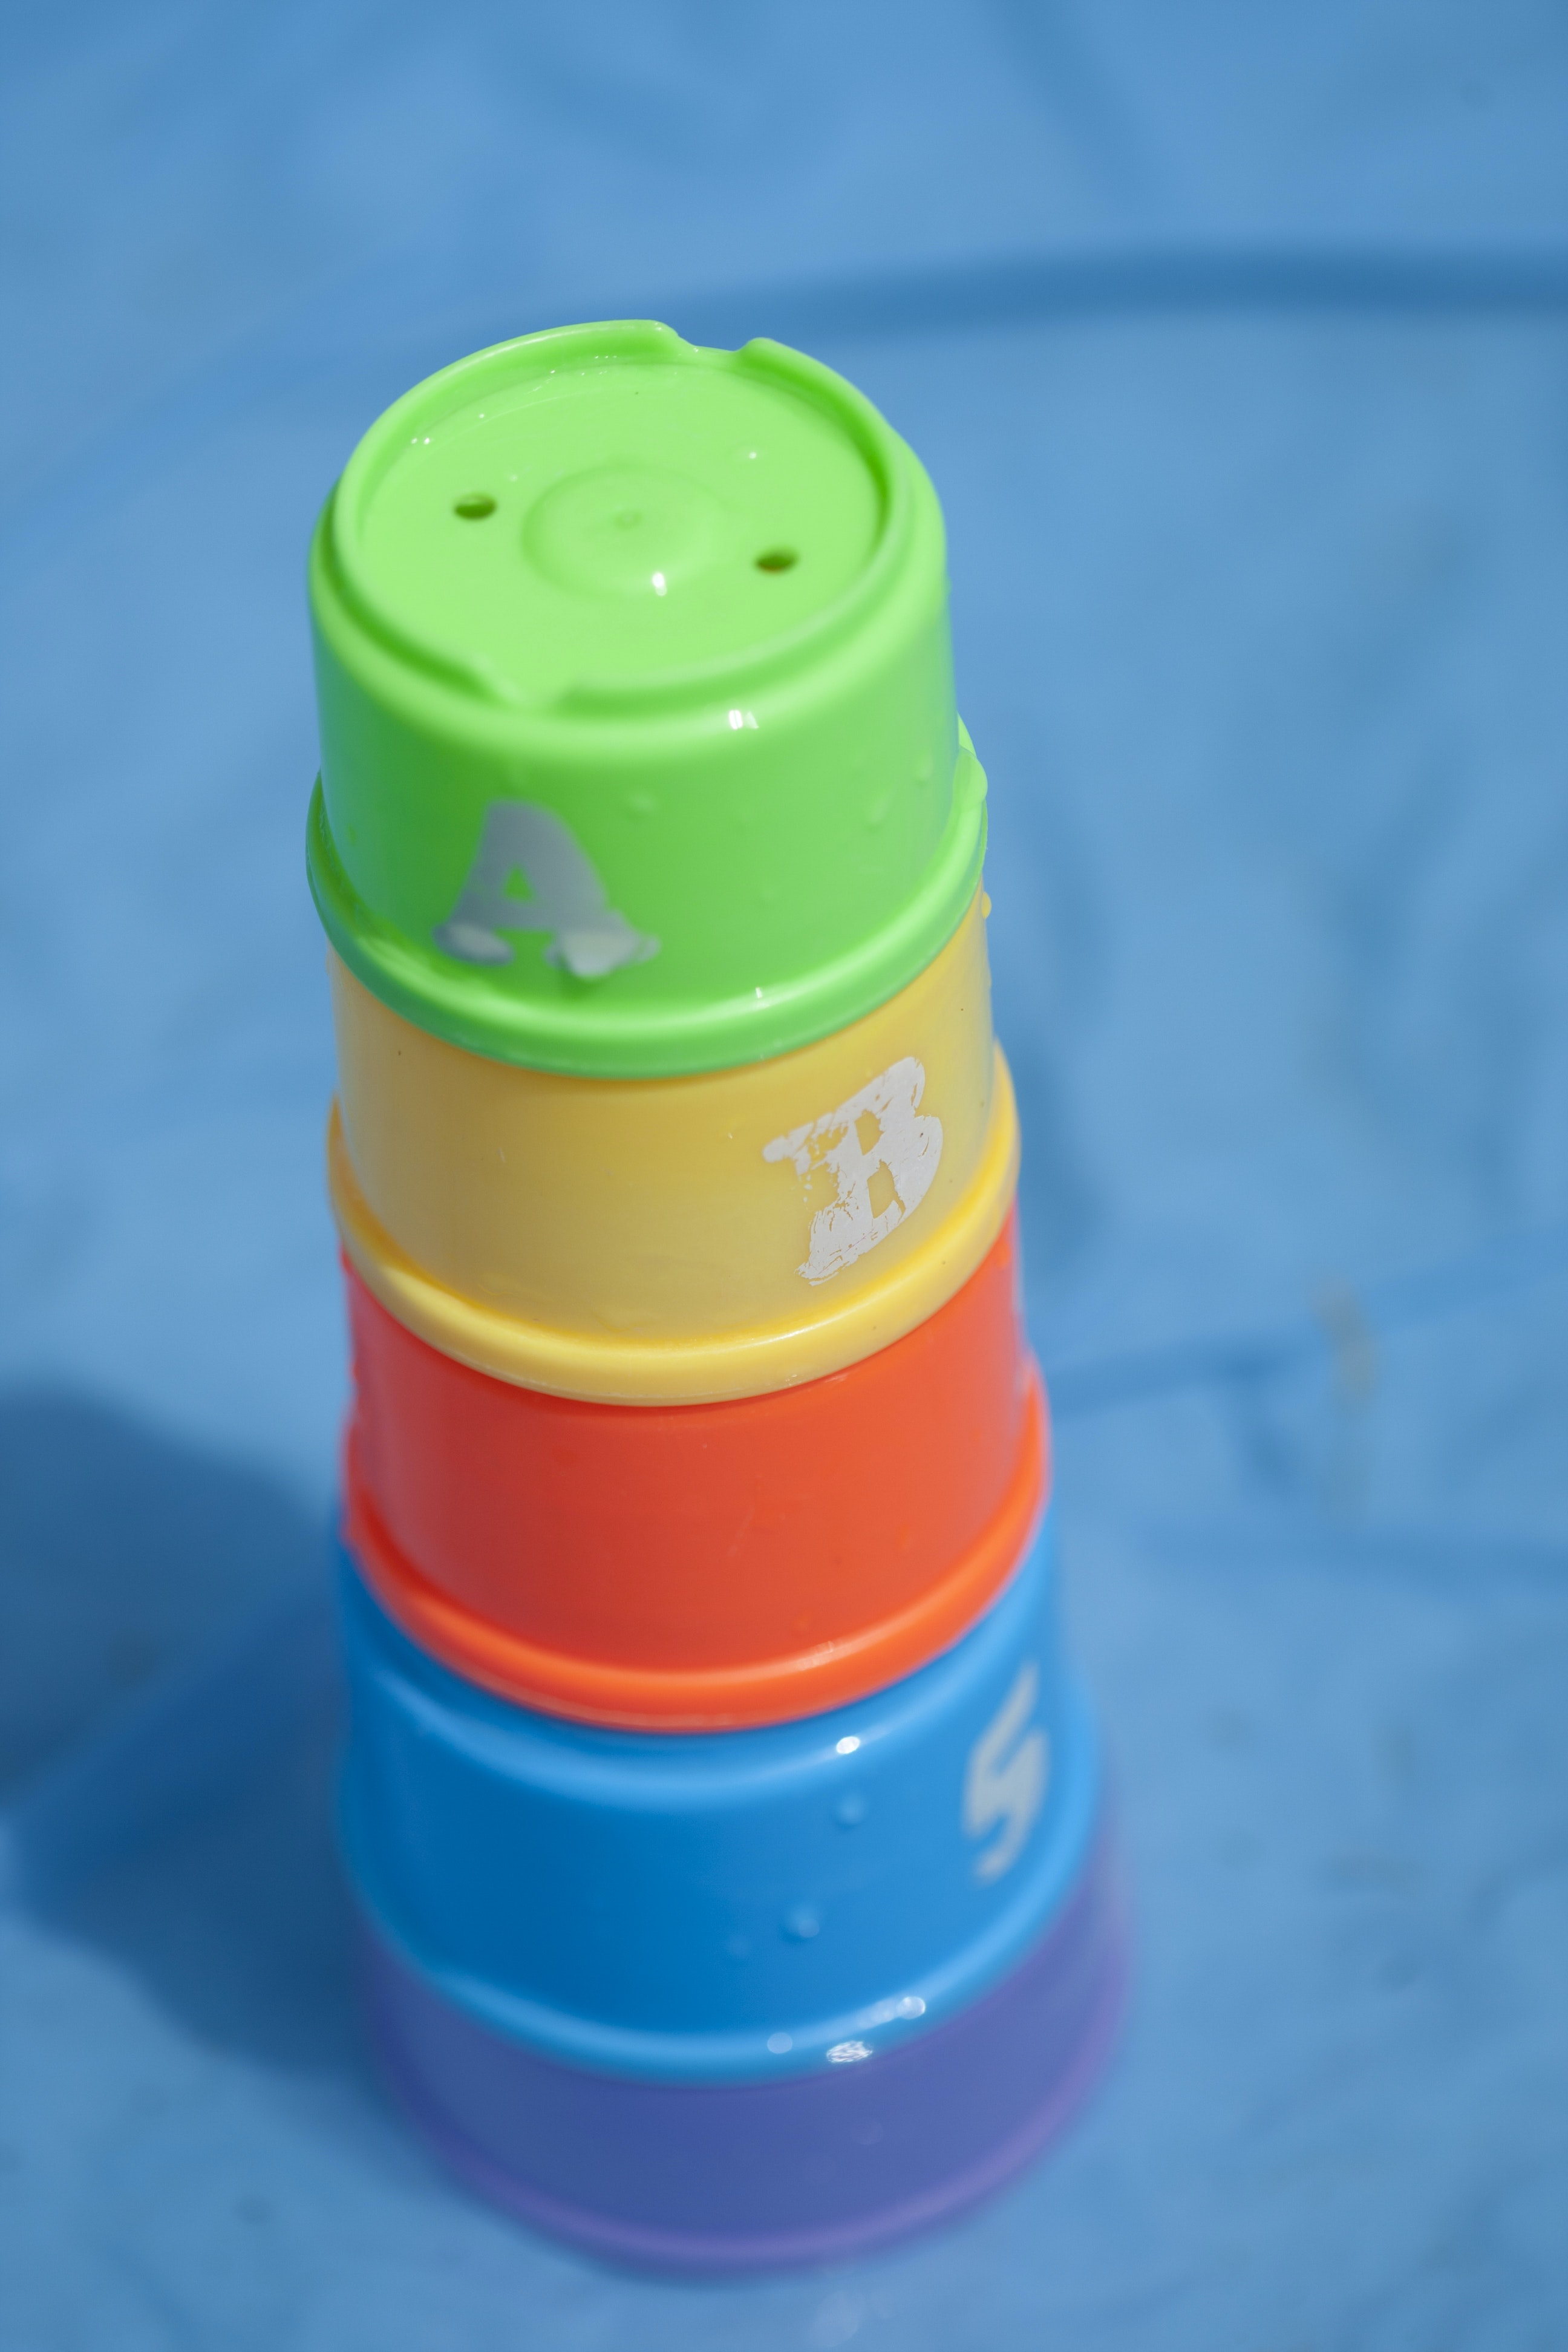 Free stock photo of kids toys, pool safety, stacking tower